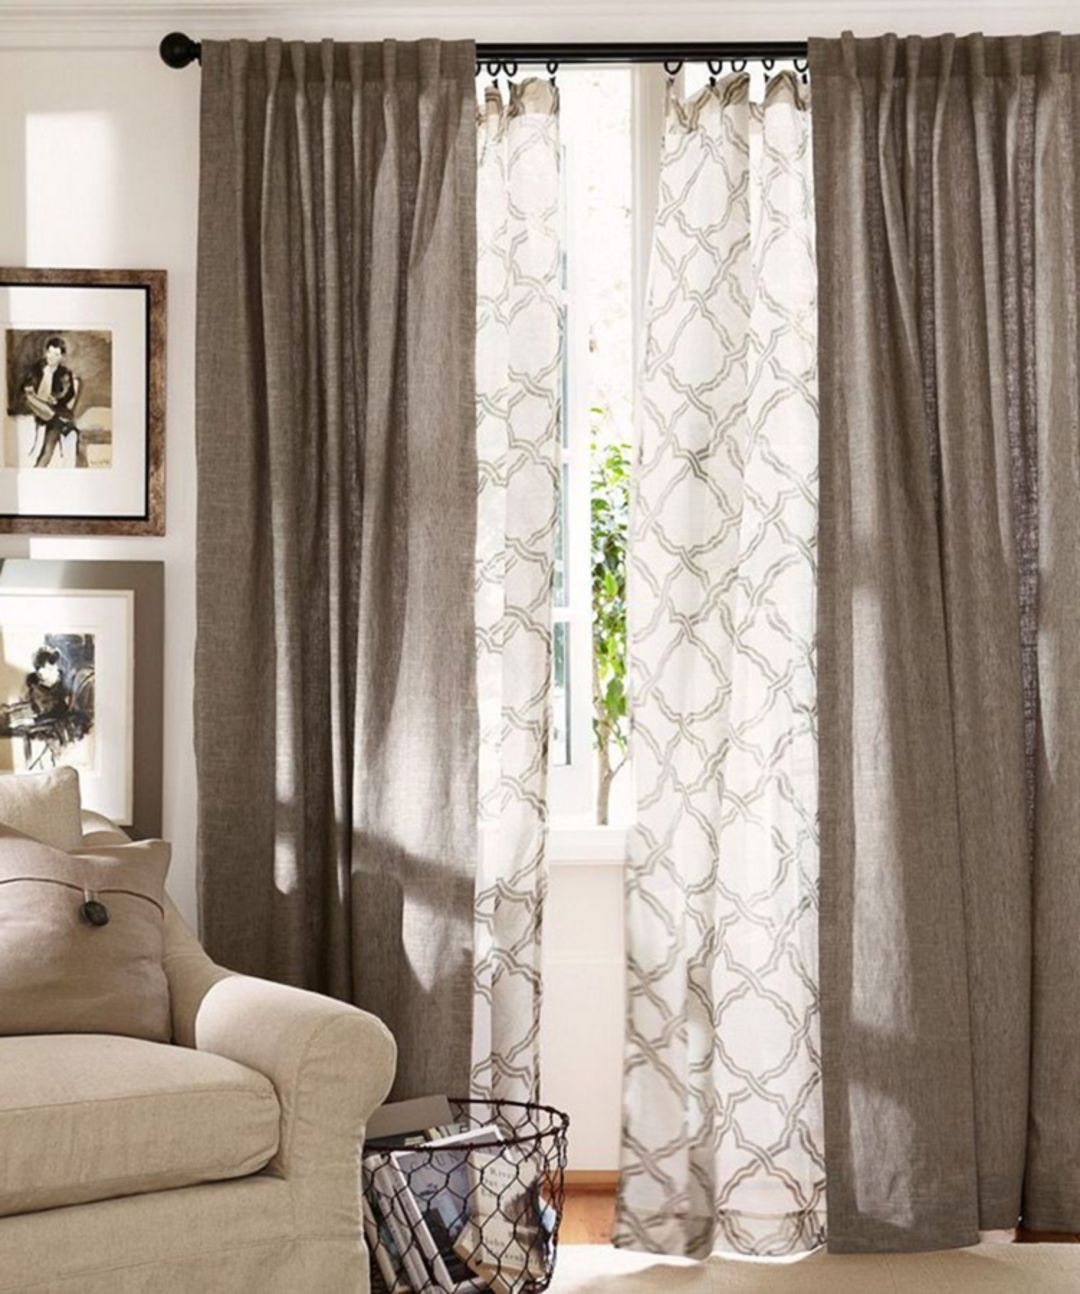 25 Beautiful Living Room Curtain Design Ideas To Enhance Your Living Room Window Treatments Living Room Curtains Living Room Living Room Windows